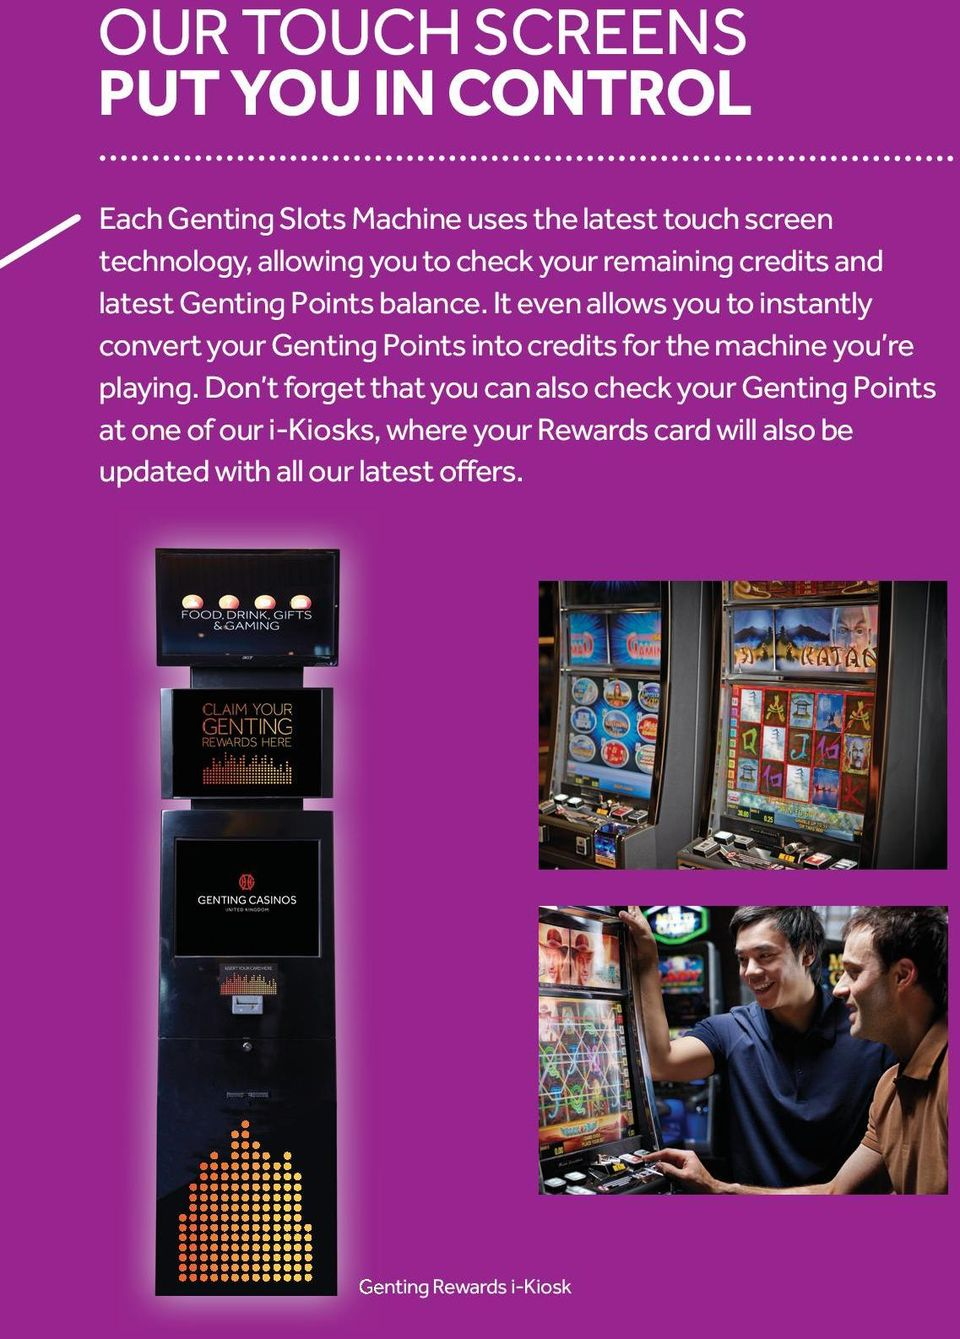 it even allows you to instantly convert your Genting Points into credits for the machine you re playing.